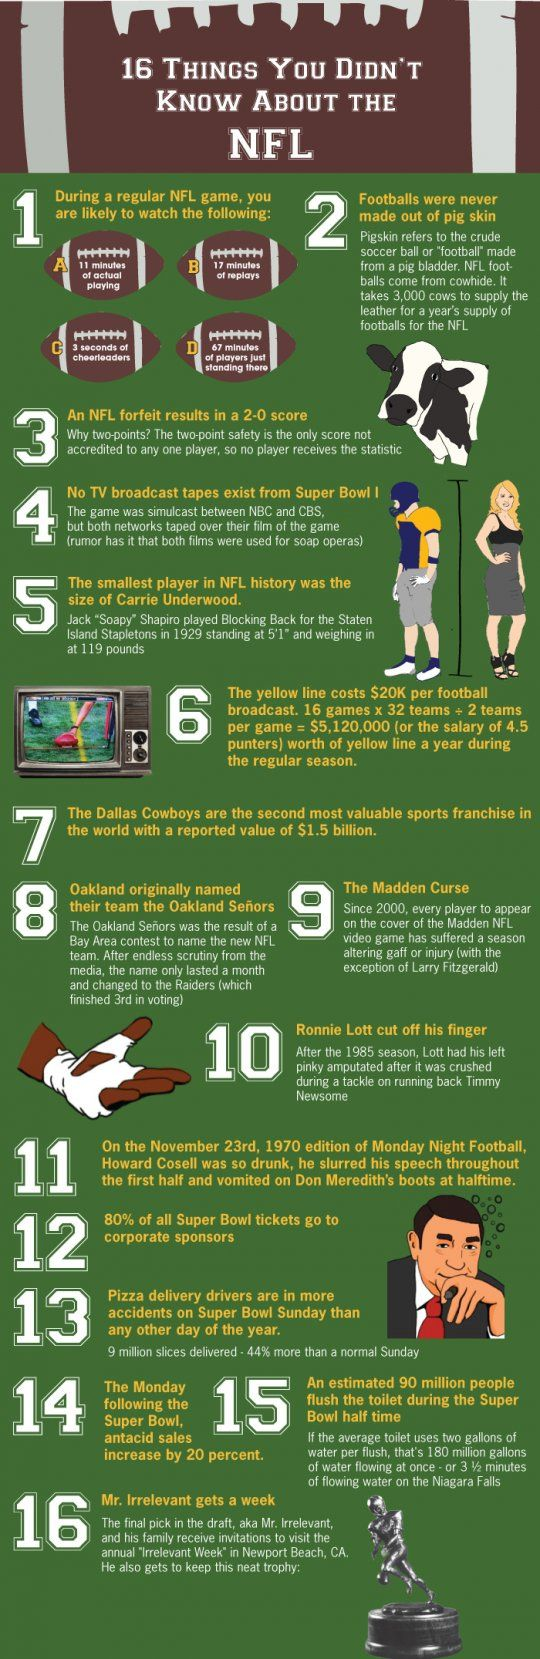 16 things you didn't know about the #NFL